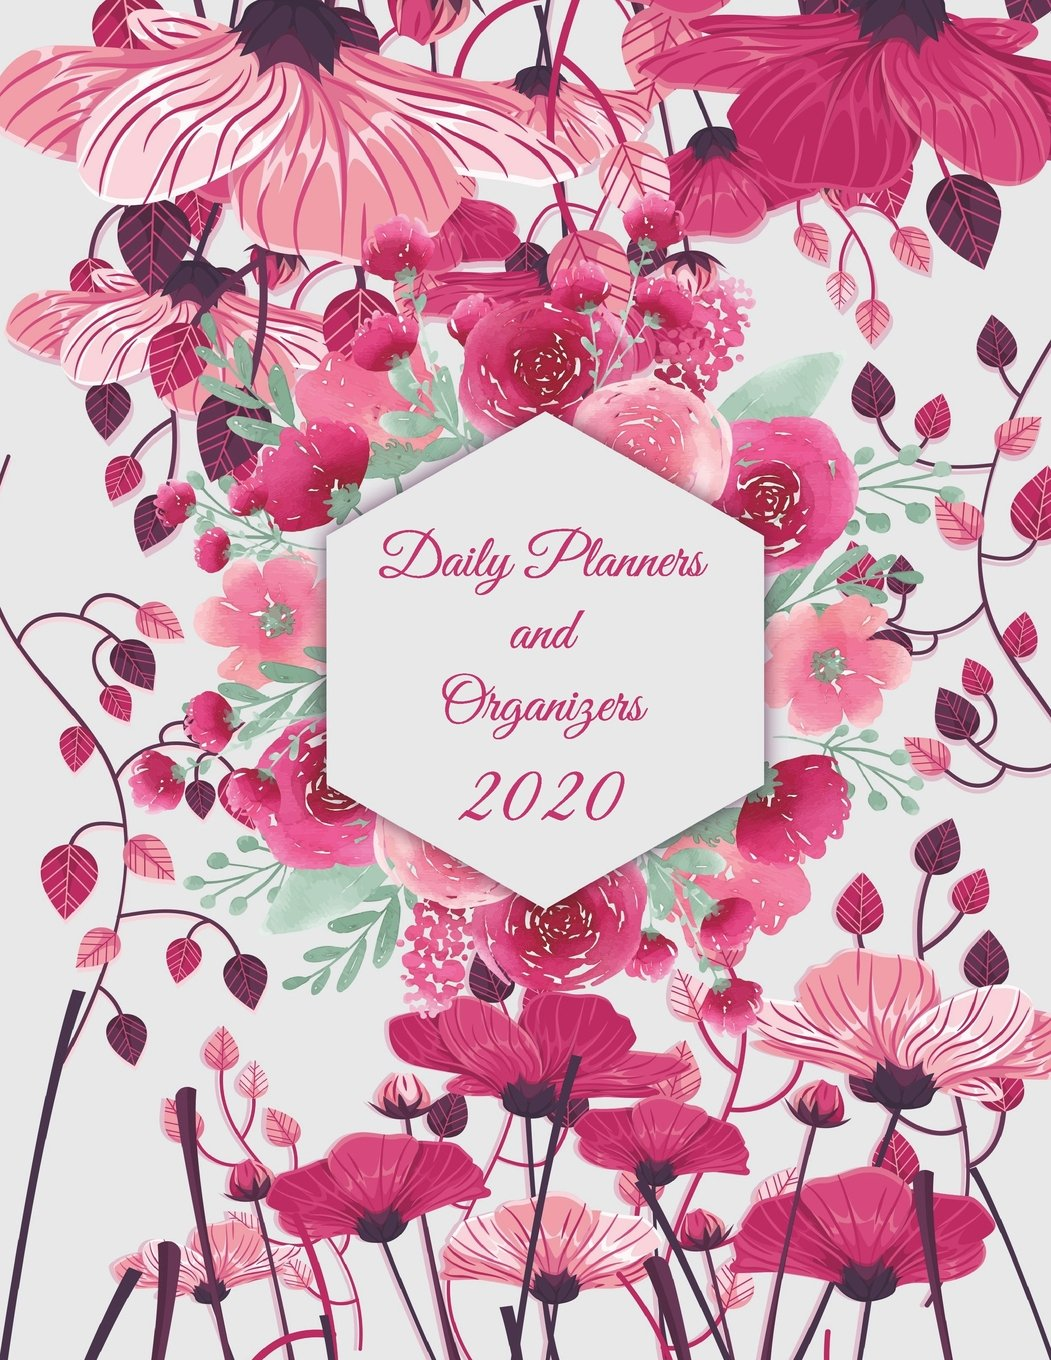 """Download Daily Planners and Organizers 2020: Floral Design, Daily Calendar Book 2020, Weekly/Monthly/Yearly Calendar Journal, Large 8.5"""" x 11"""" 365 Daily ... Agenda Planner, Calendar Schedule Organizer pdf epub"""